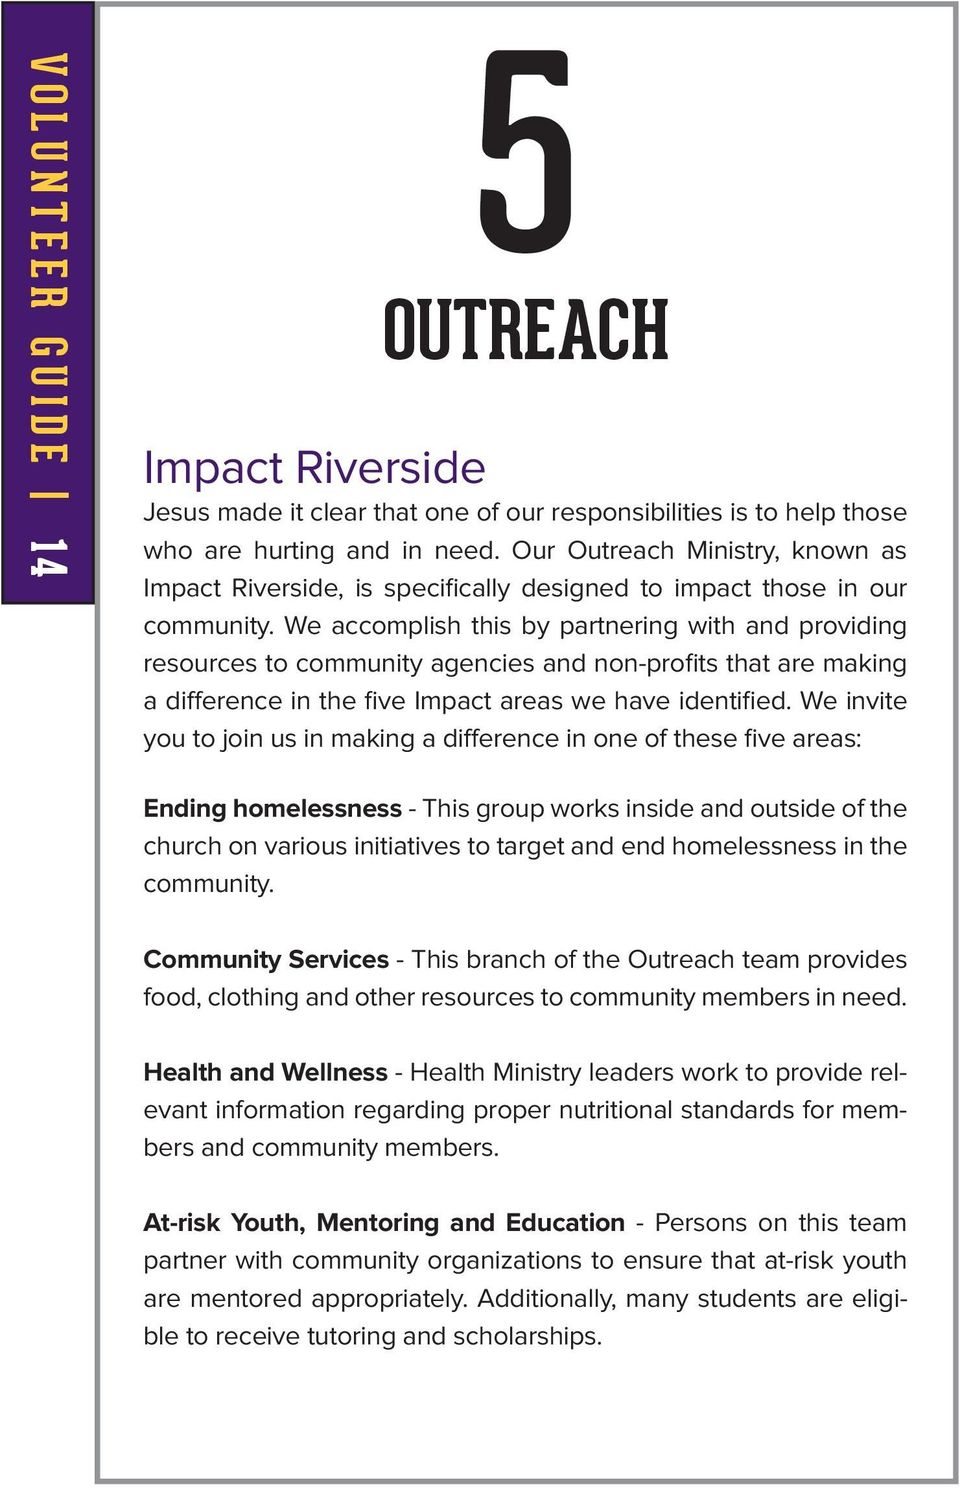 We accomplish this by partnering with and providing resources to community agencies and non-profits that are making a difference in the five Impact areas we have identified.